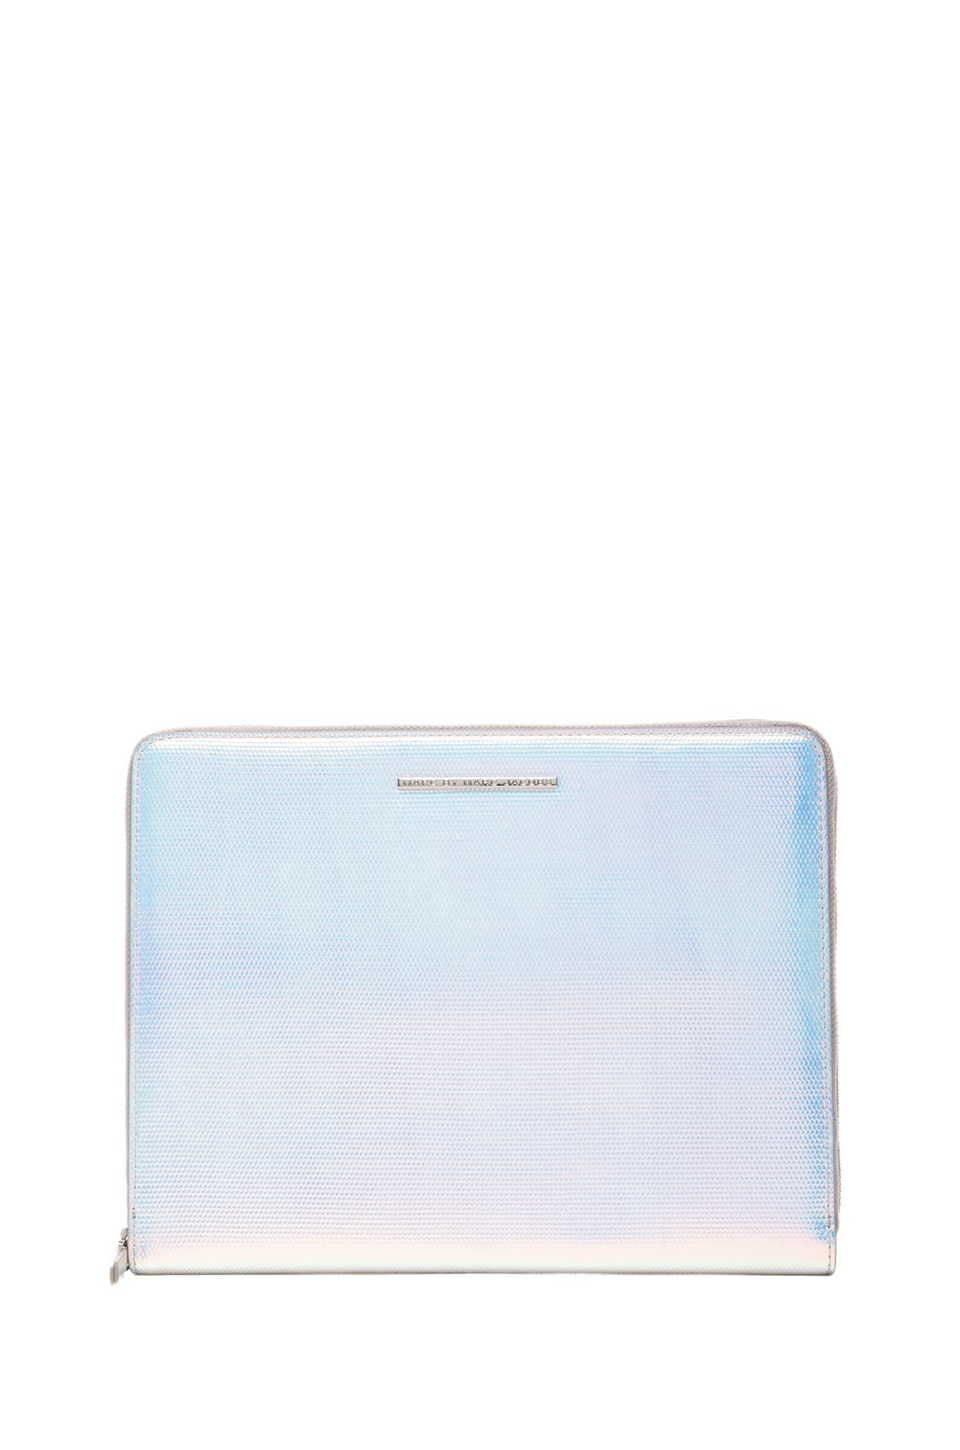 Marc by Marc Jacobs Karma Chameleon Tablet Book in Silver Holographic